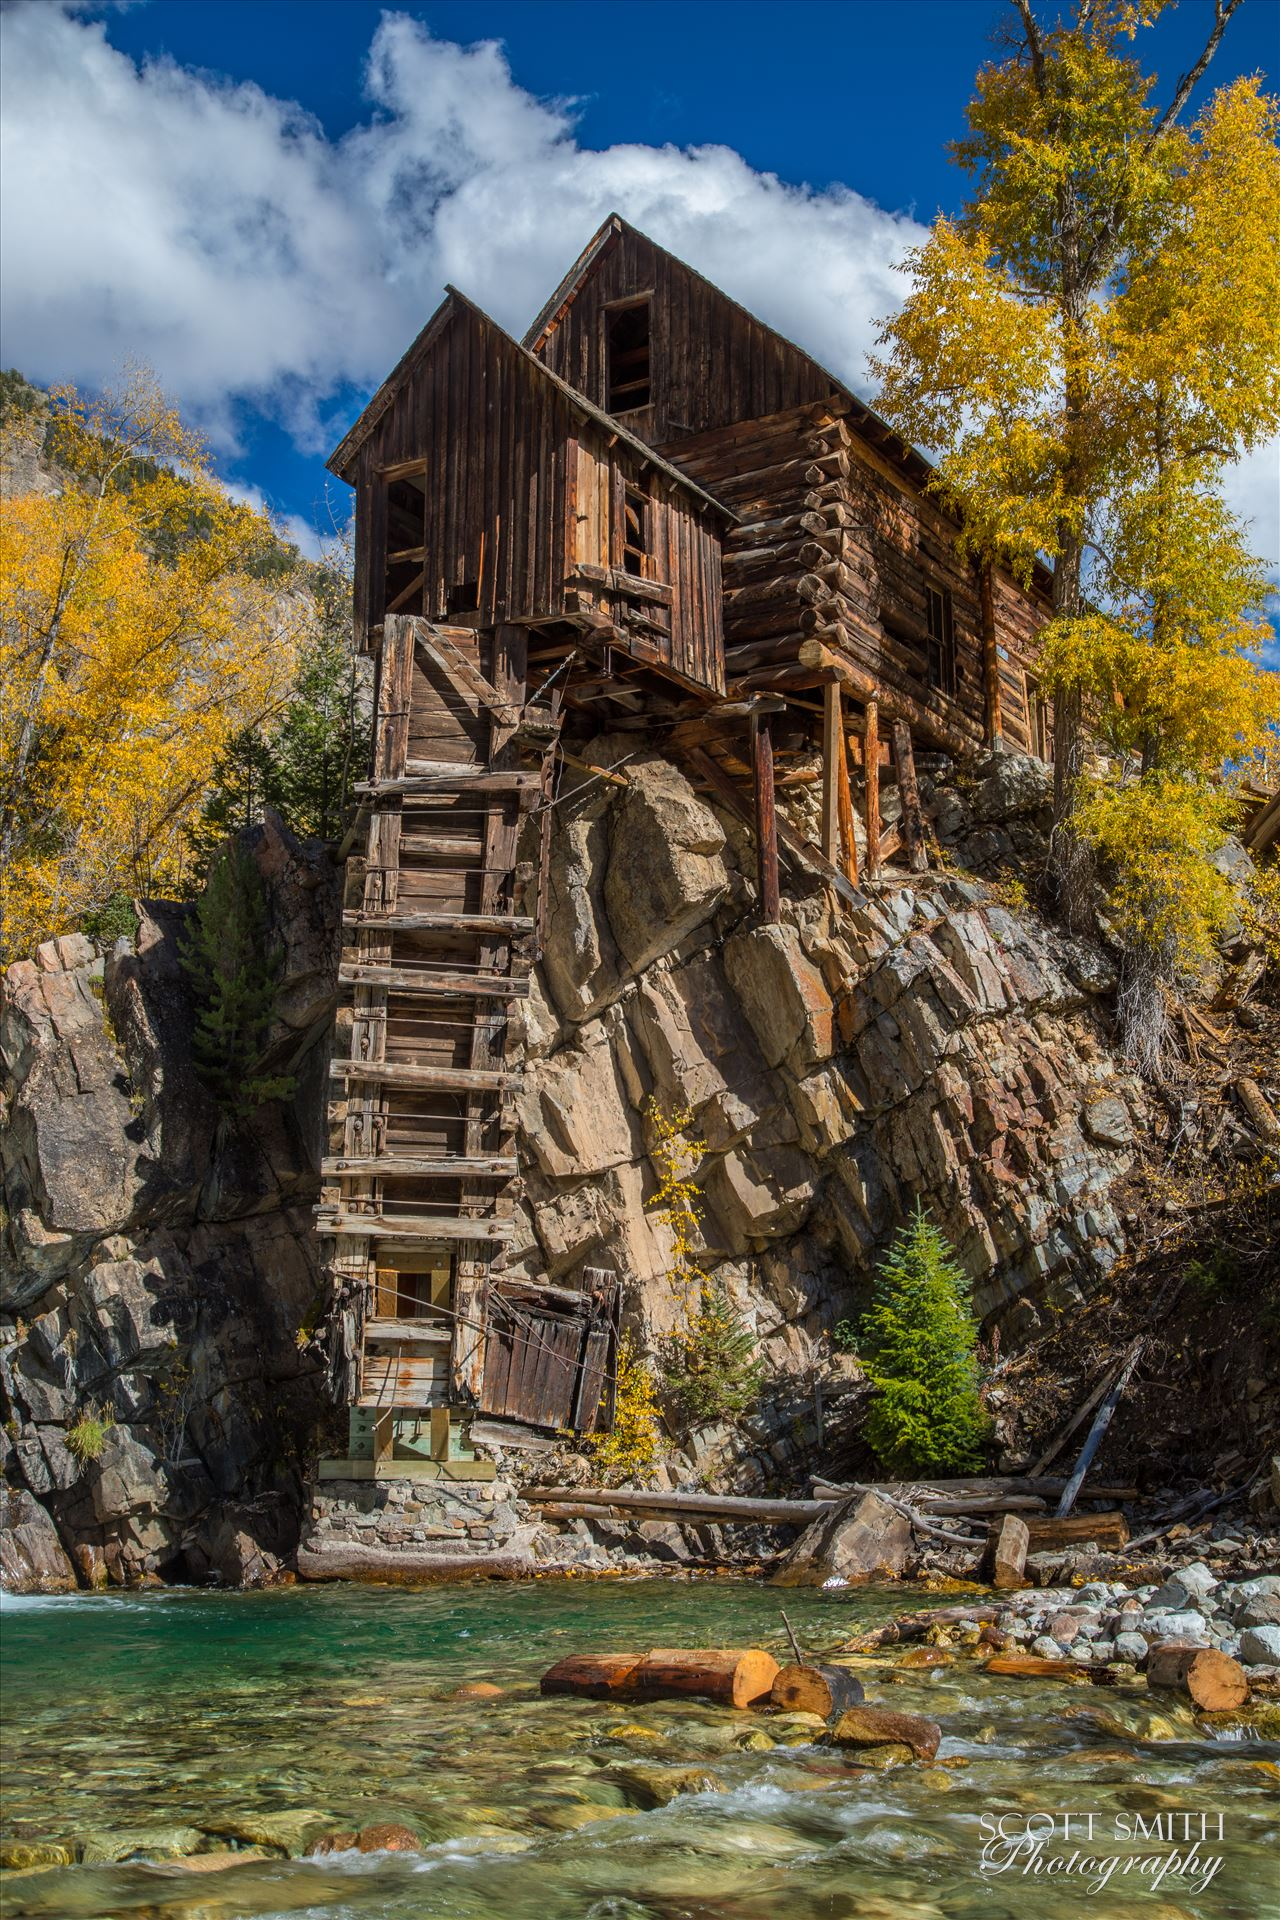 Crystal Mill, Colorado 14 - The Crystal Mill, or the Old Mill is an 1892 wooden powerhouse located on an outcrop above the Crystal River in Crystal, Colorado by D Scott Smith